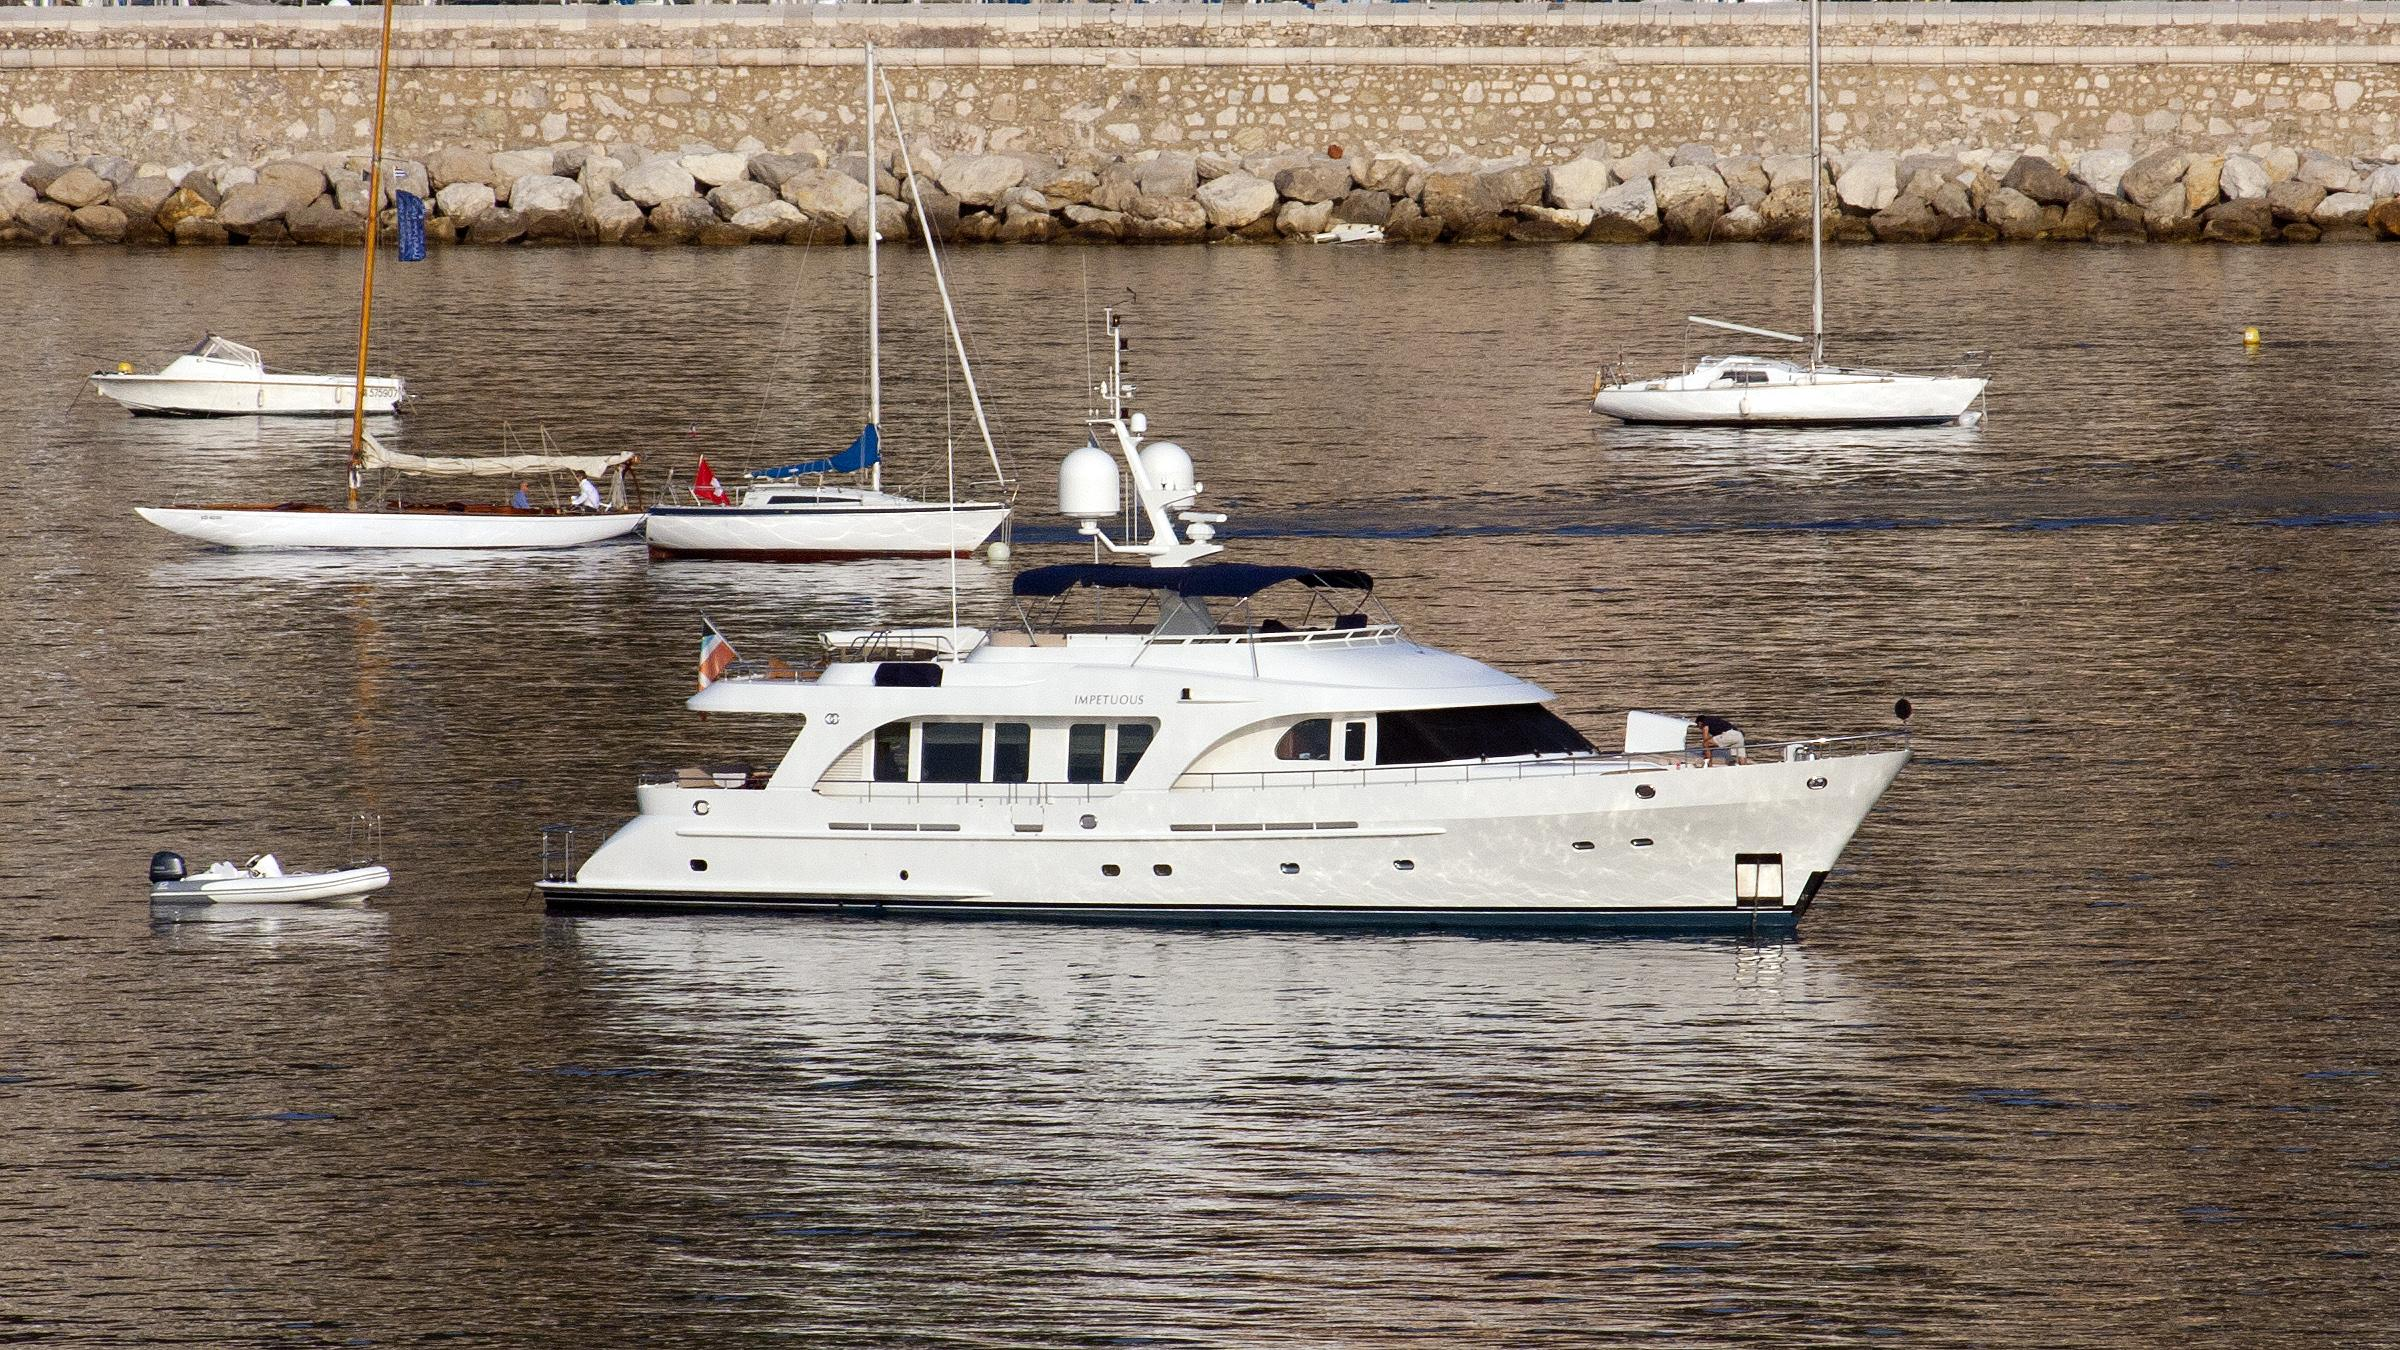 impetuous-motor-yacht-moonen-84-2002-26m-profile